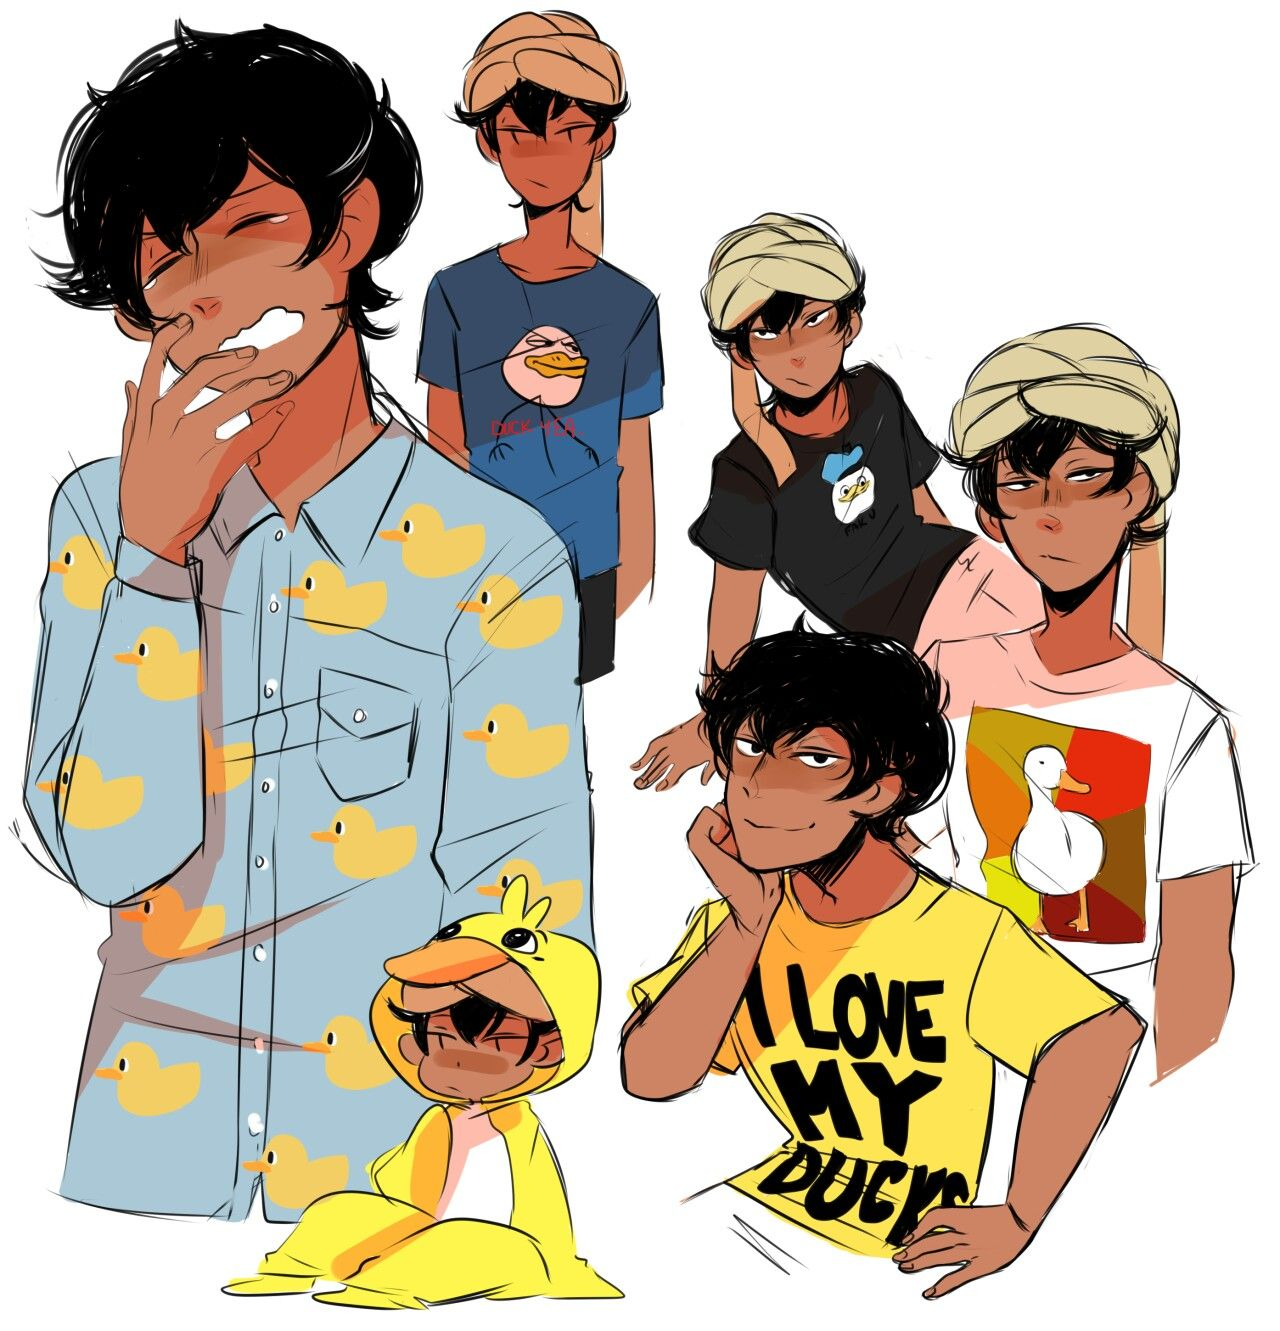 Pin by Audg on Character design Akira, Character design